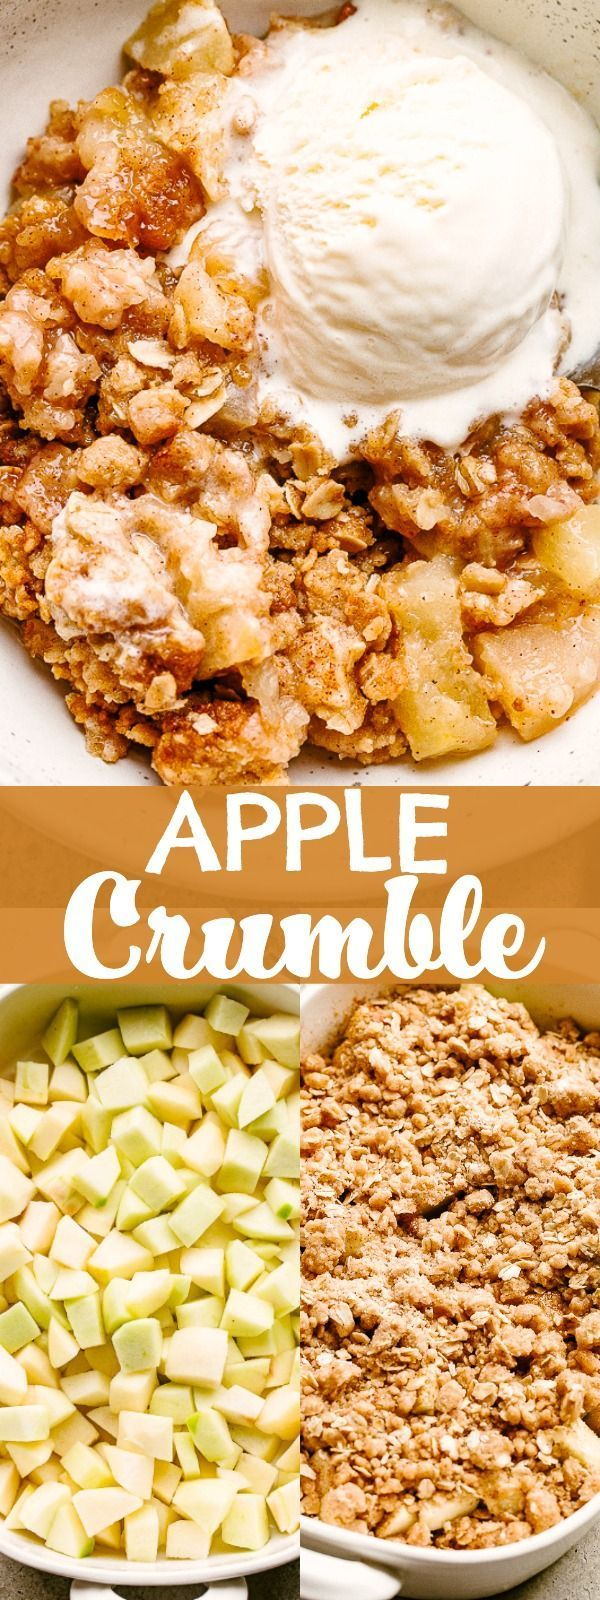 Best Apple Crumble Recipe   How to Make Apple Crumble